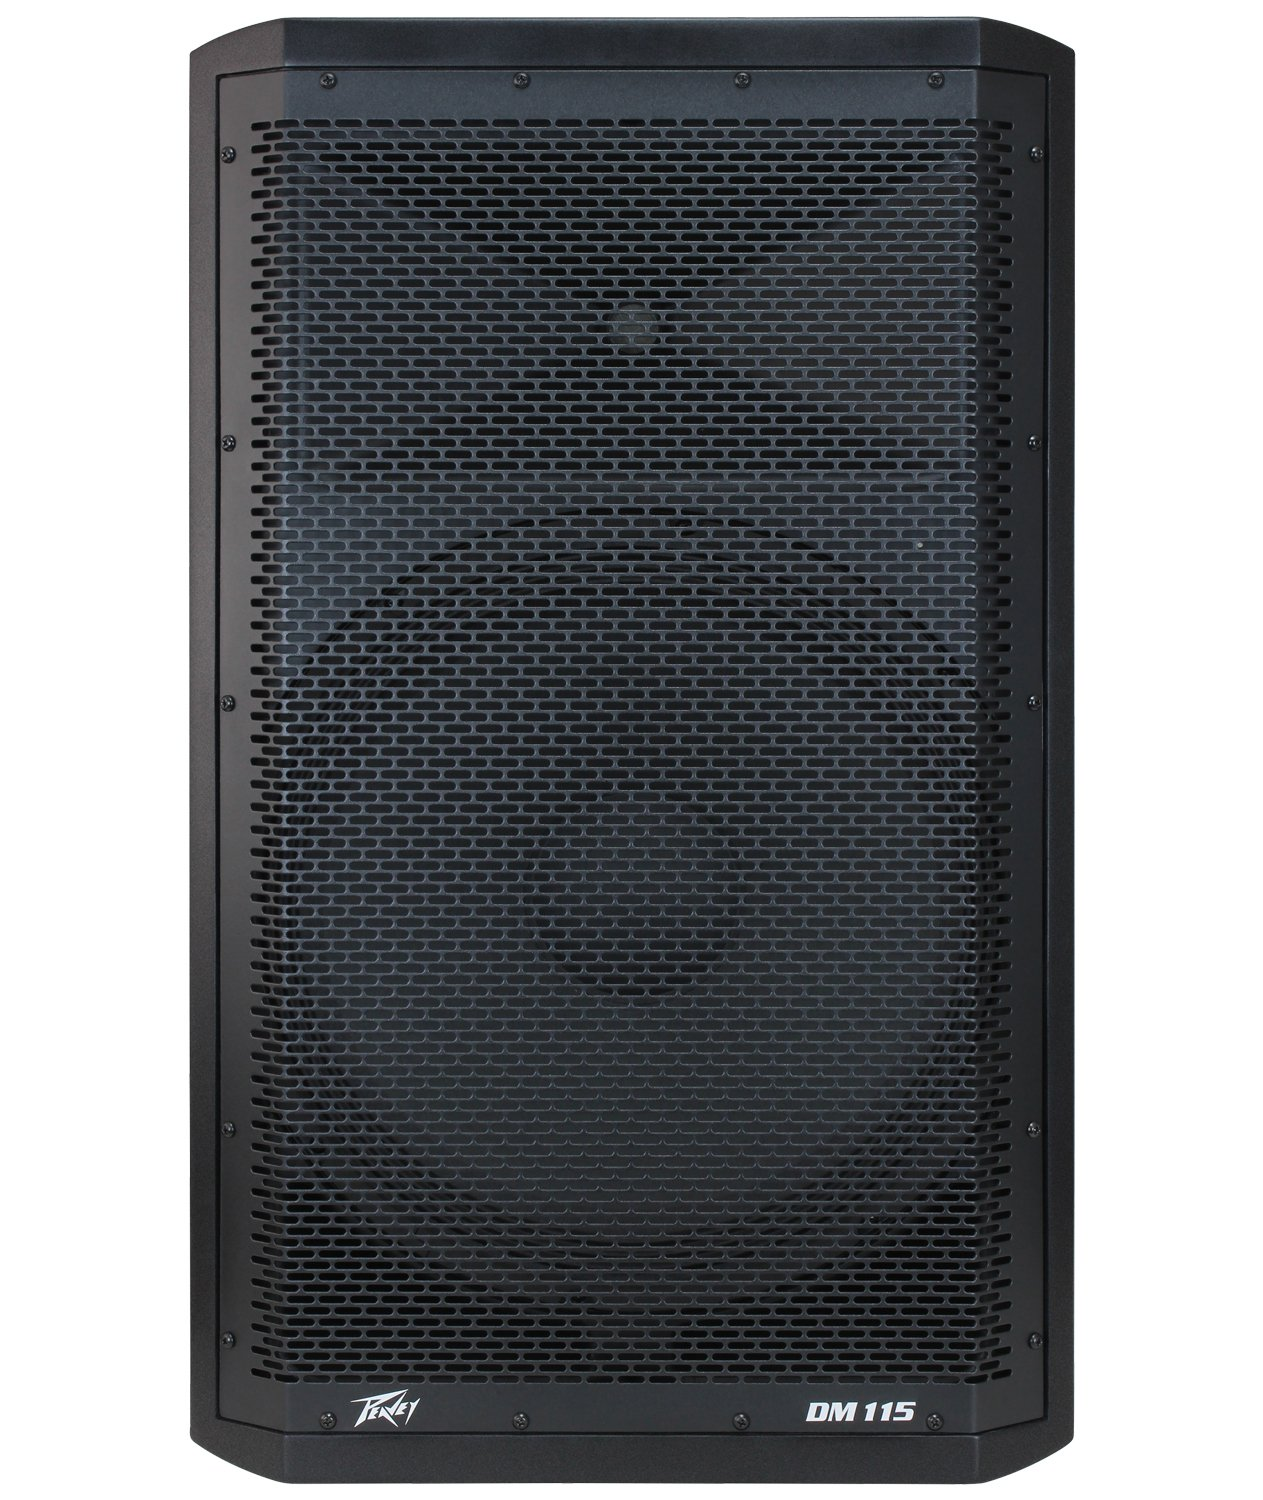 Peavey Dark Matter DM 115 1x15 1000 watt Powered Speaker